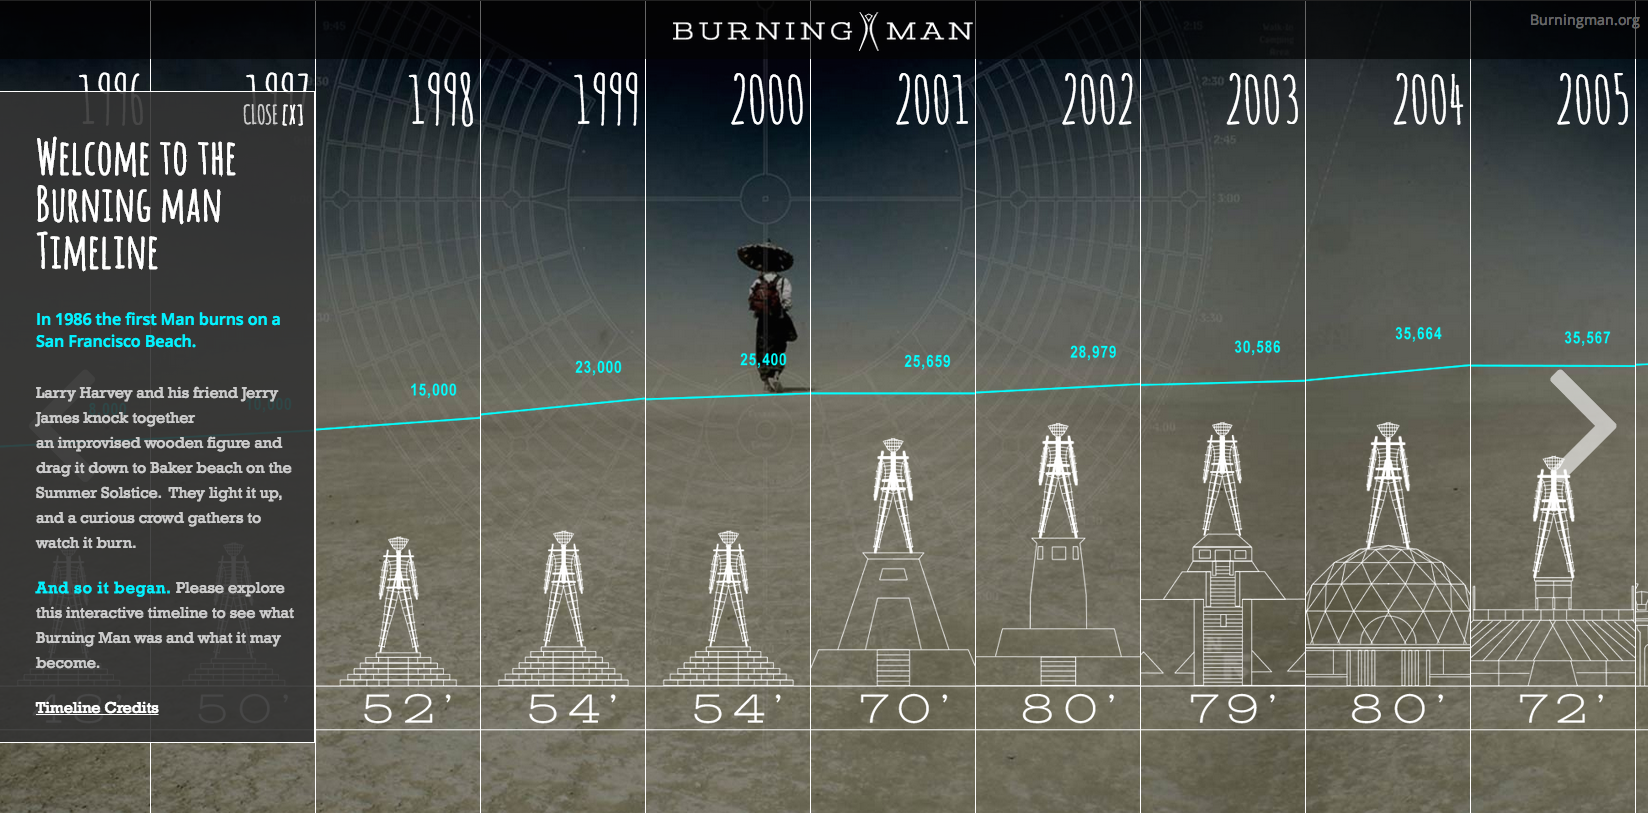 Burning Man Timeline